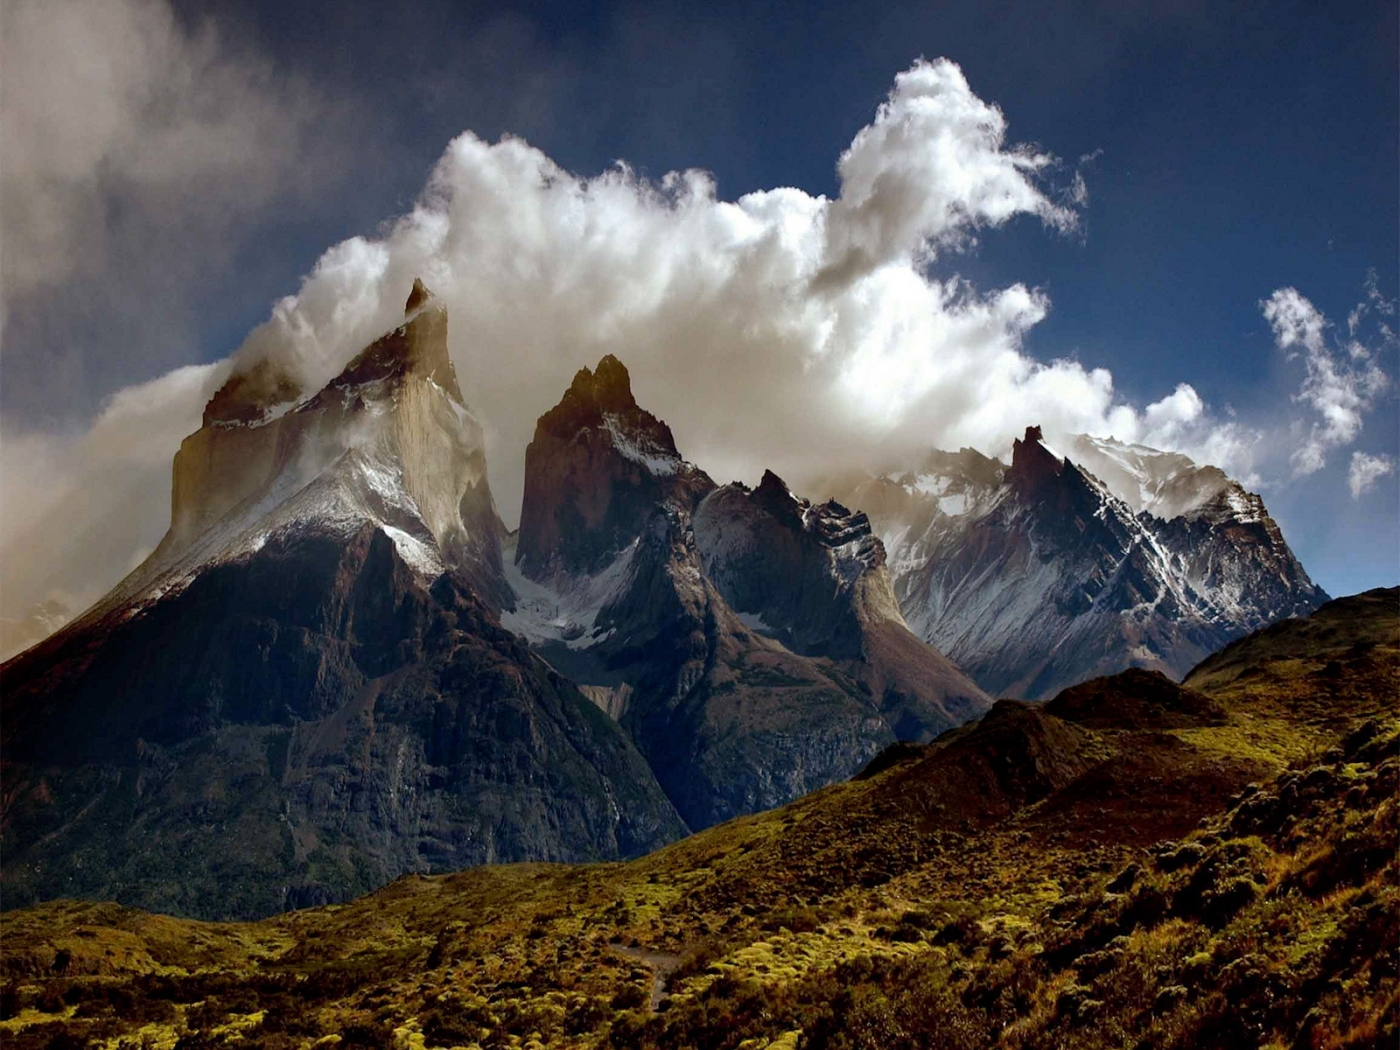 32425 download wallpaper Landscape, Mountains screensavers and pictures for free